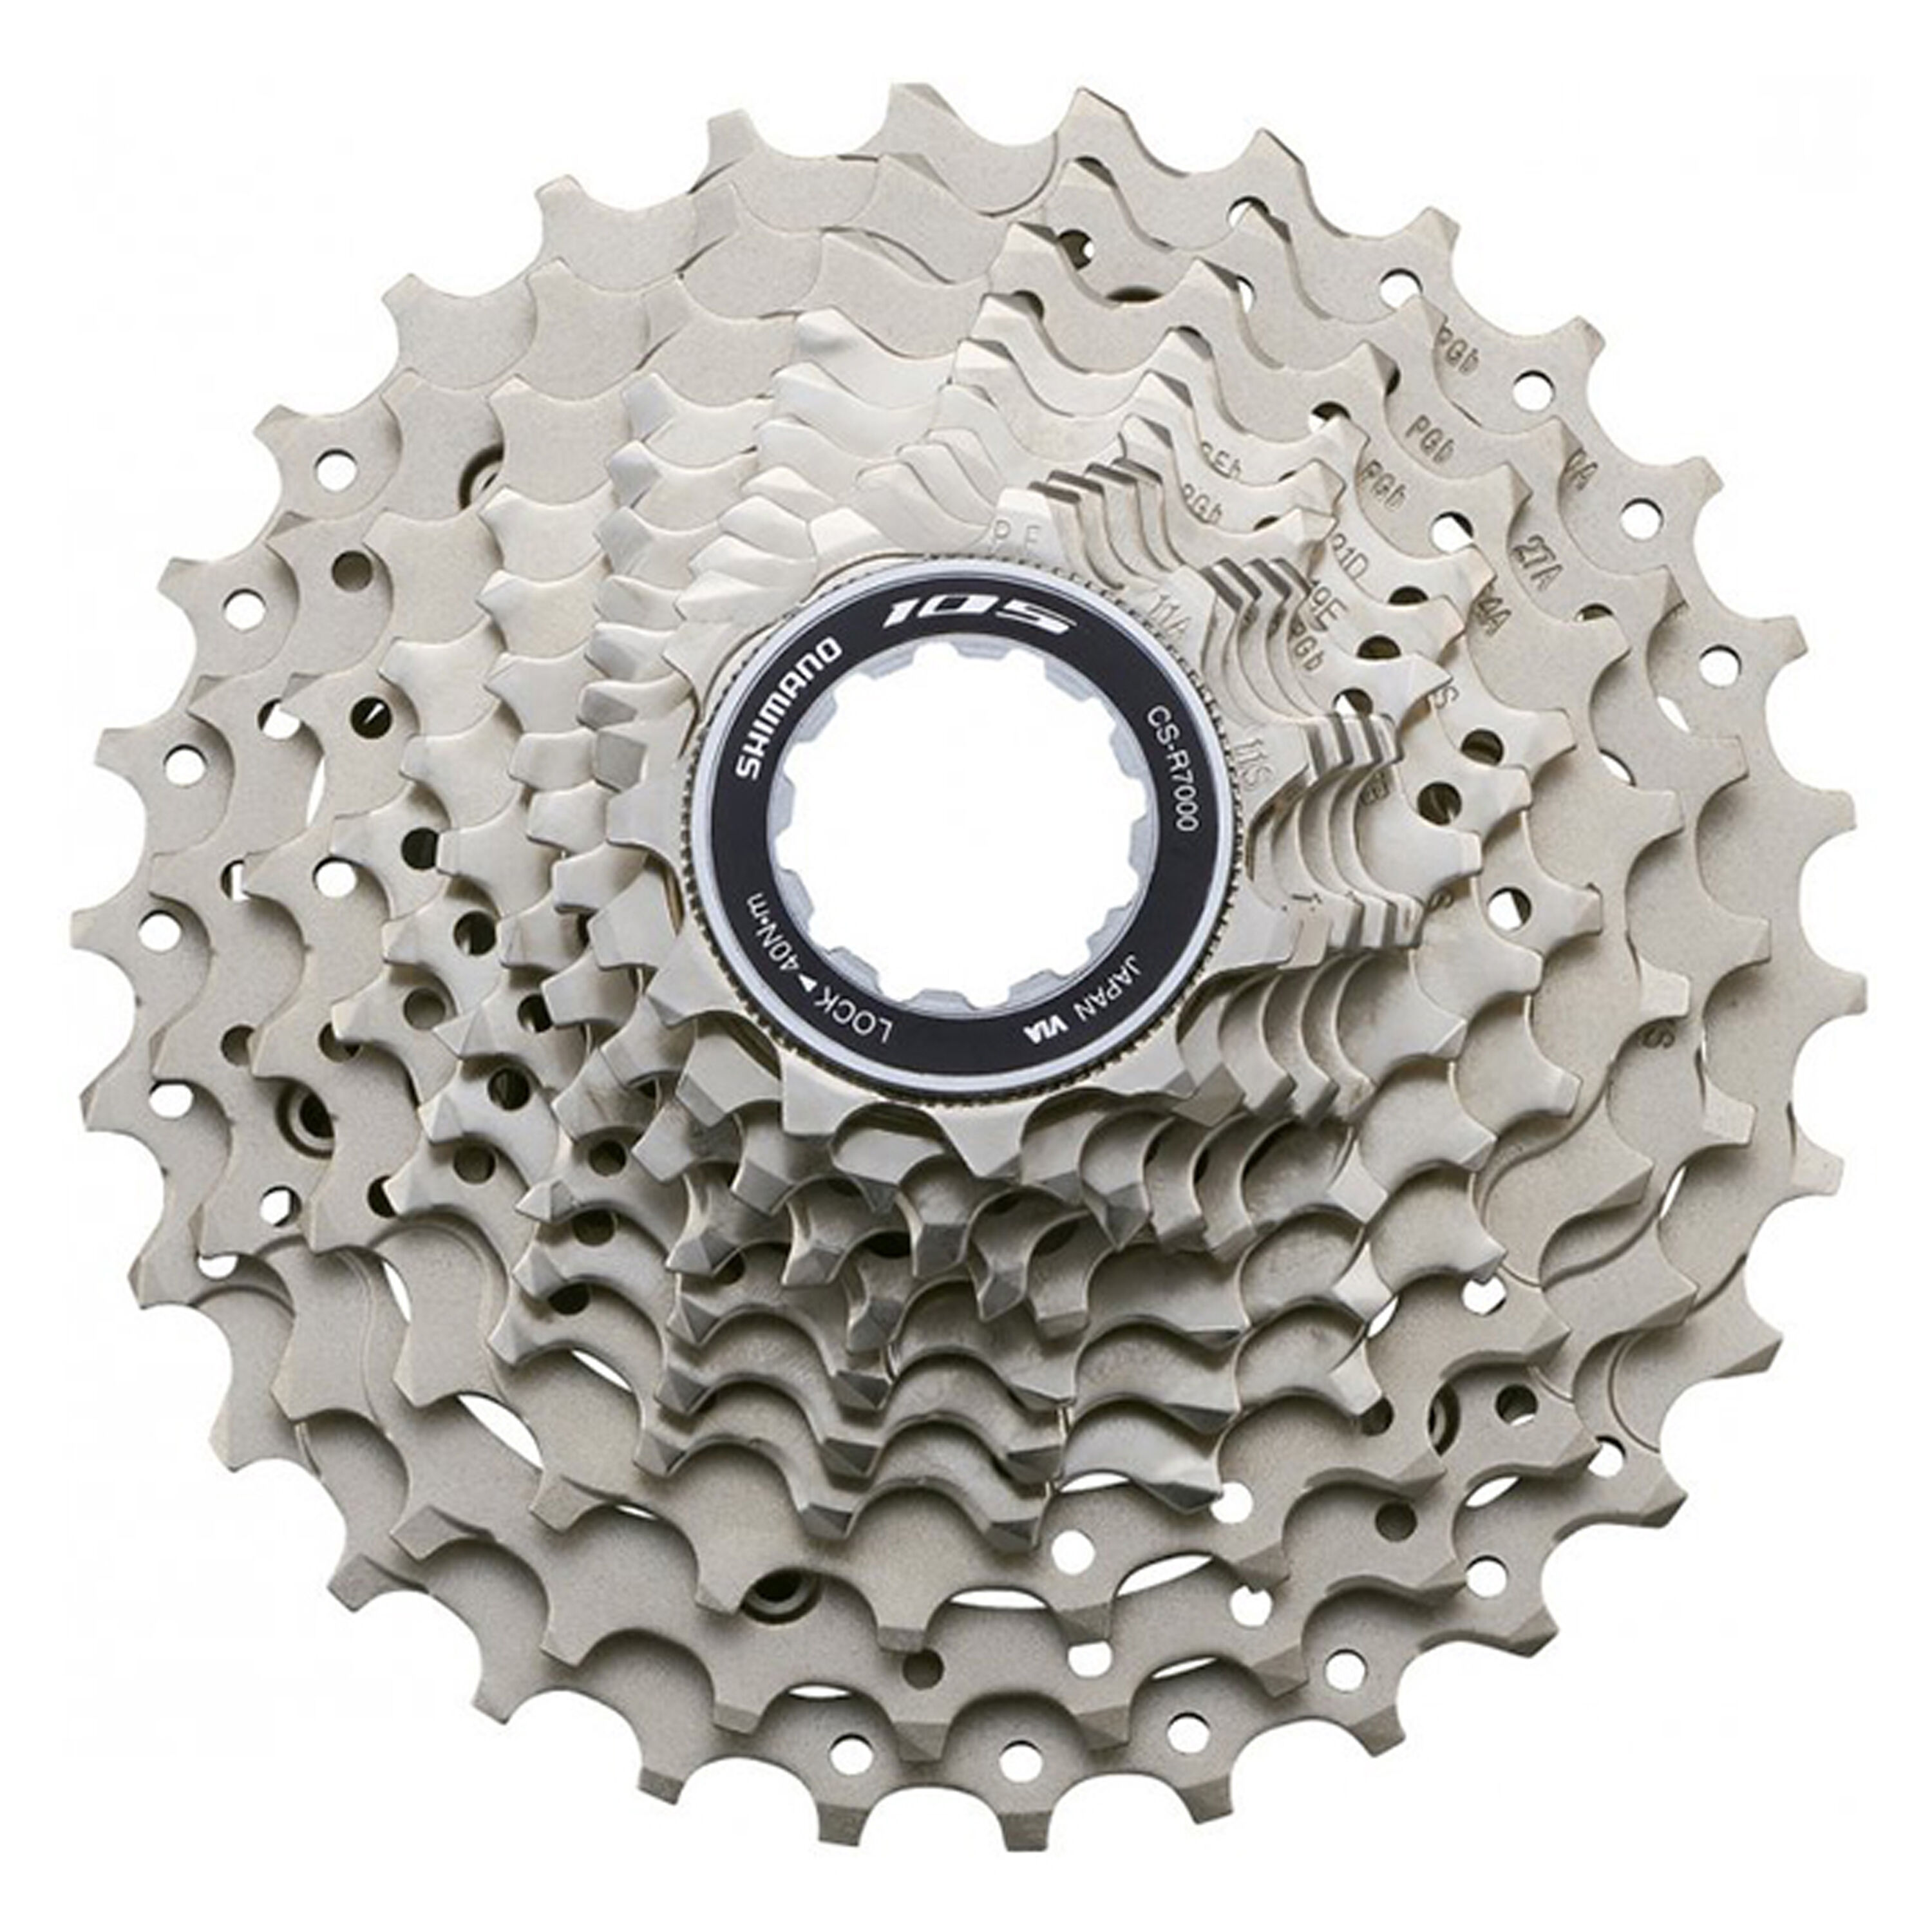 7a5259ea3a7 Shimano 105 R7000 11S groupset LordGun online bike store